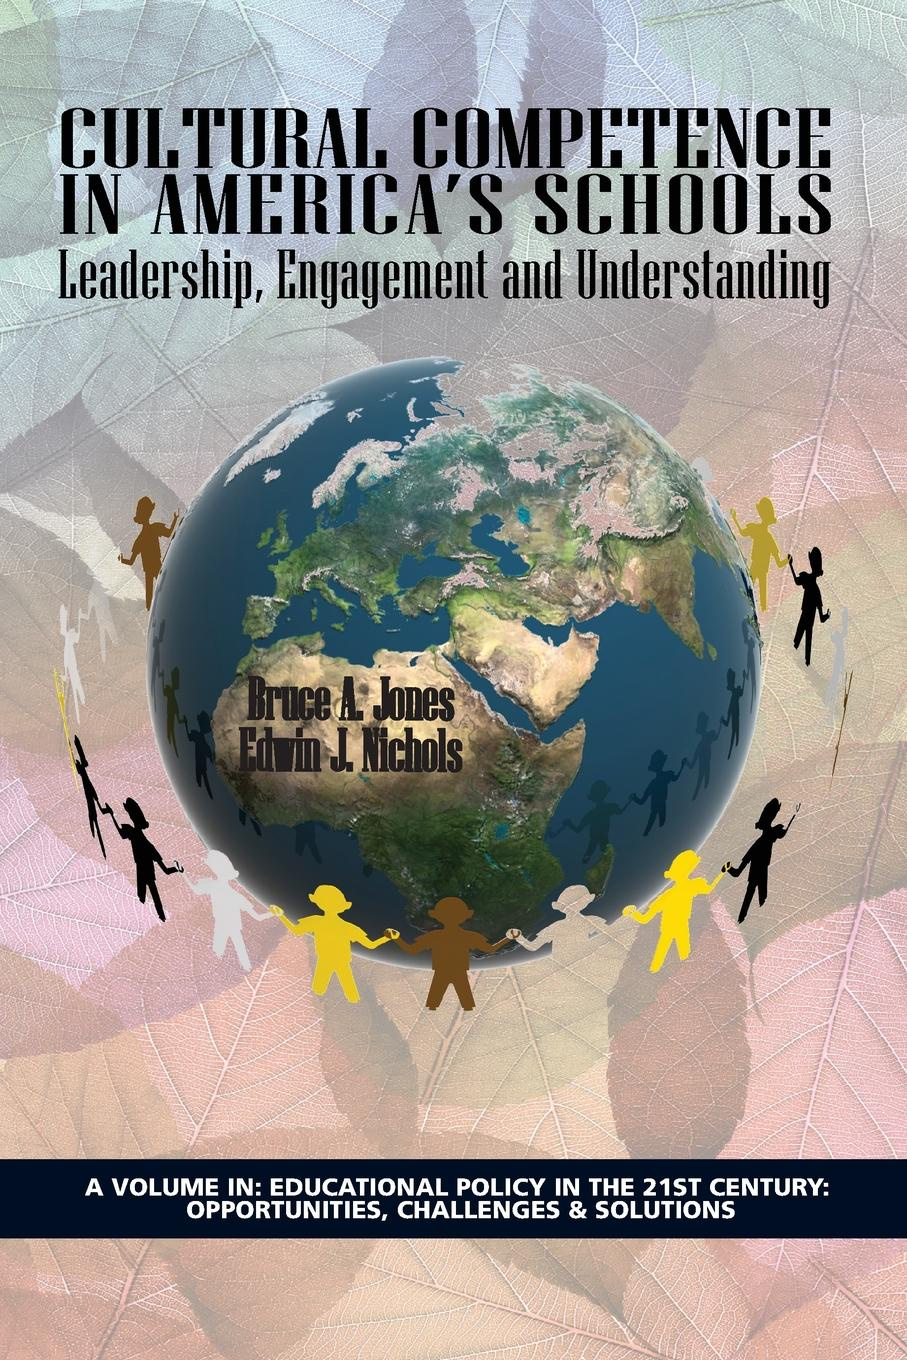 Bruce A. Jones, Edwin J. Nichols Cultural Competence in America.s Schools. Leadership, Engagement and Understanding linda j martin essentials of special education diversity in the classroom